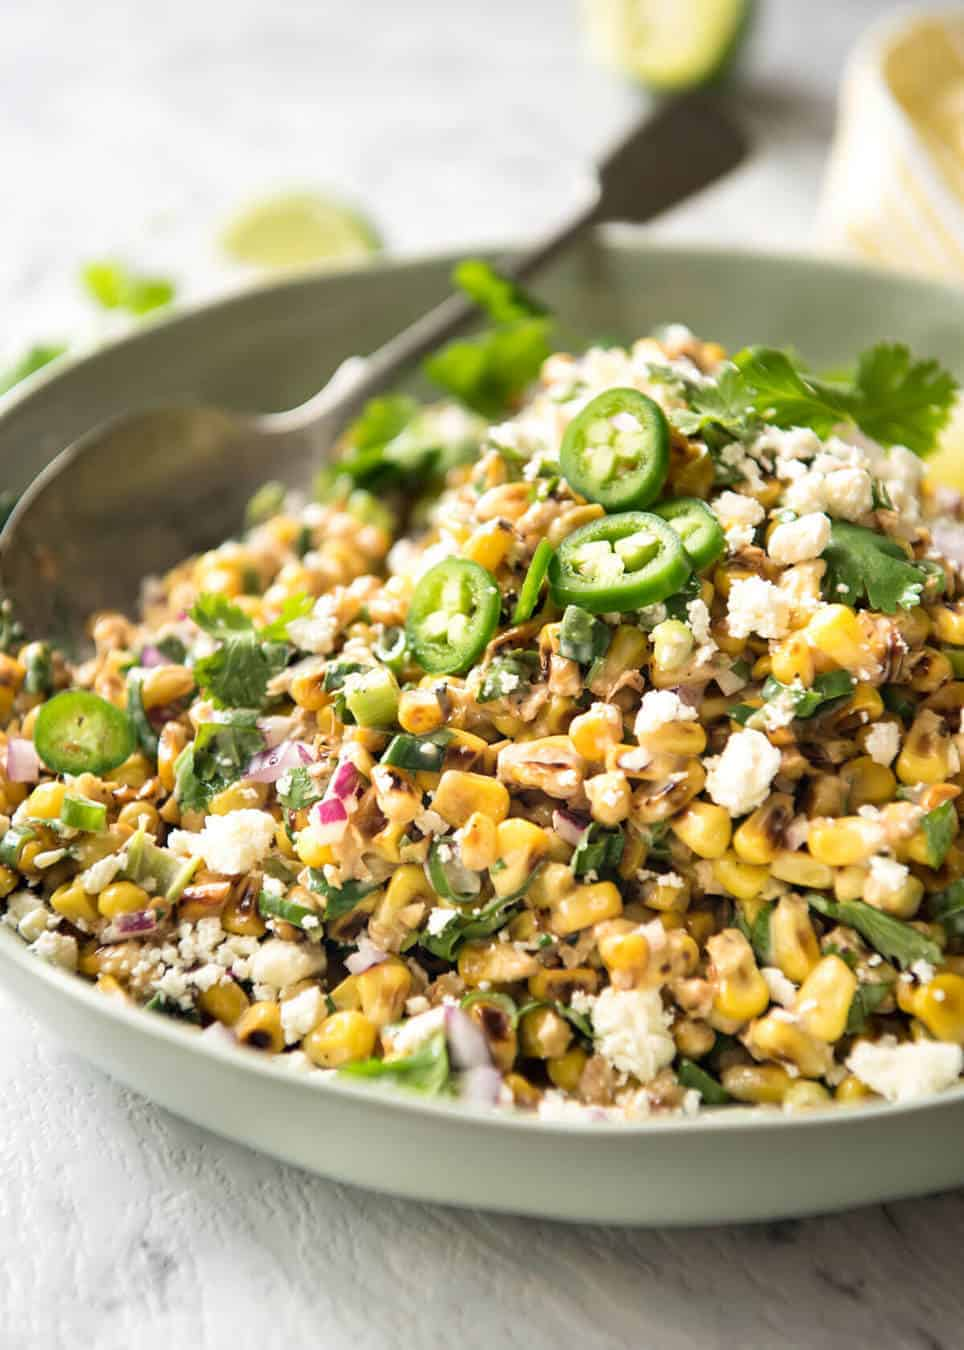 Mexican Corn Salad - Inspired by the famous Mexican street corn, this is a terrific way to use corn for an irresistible side! www.recipetineats.com